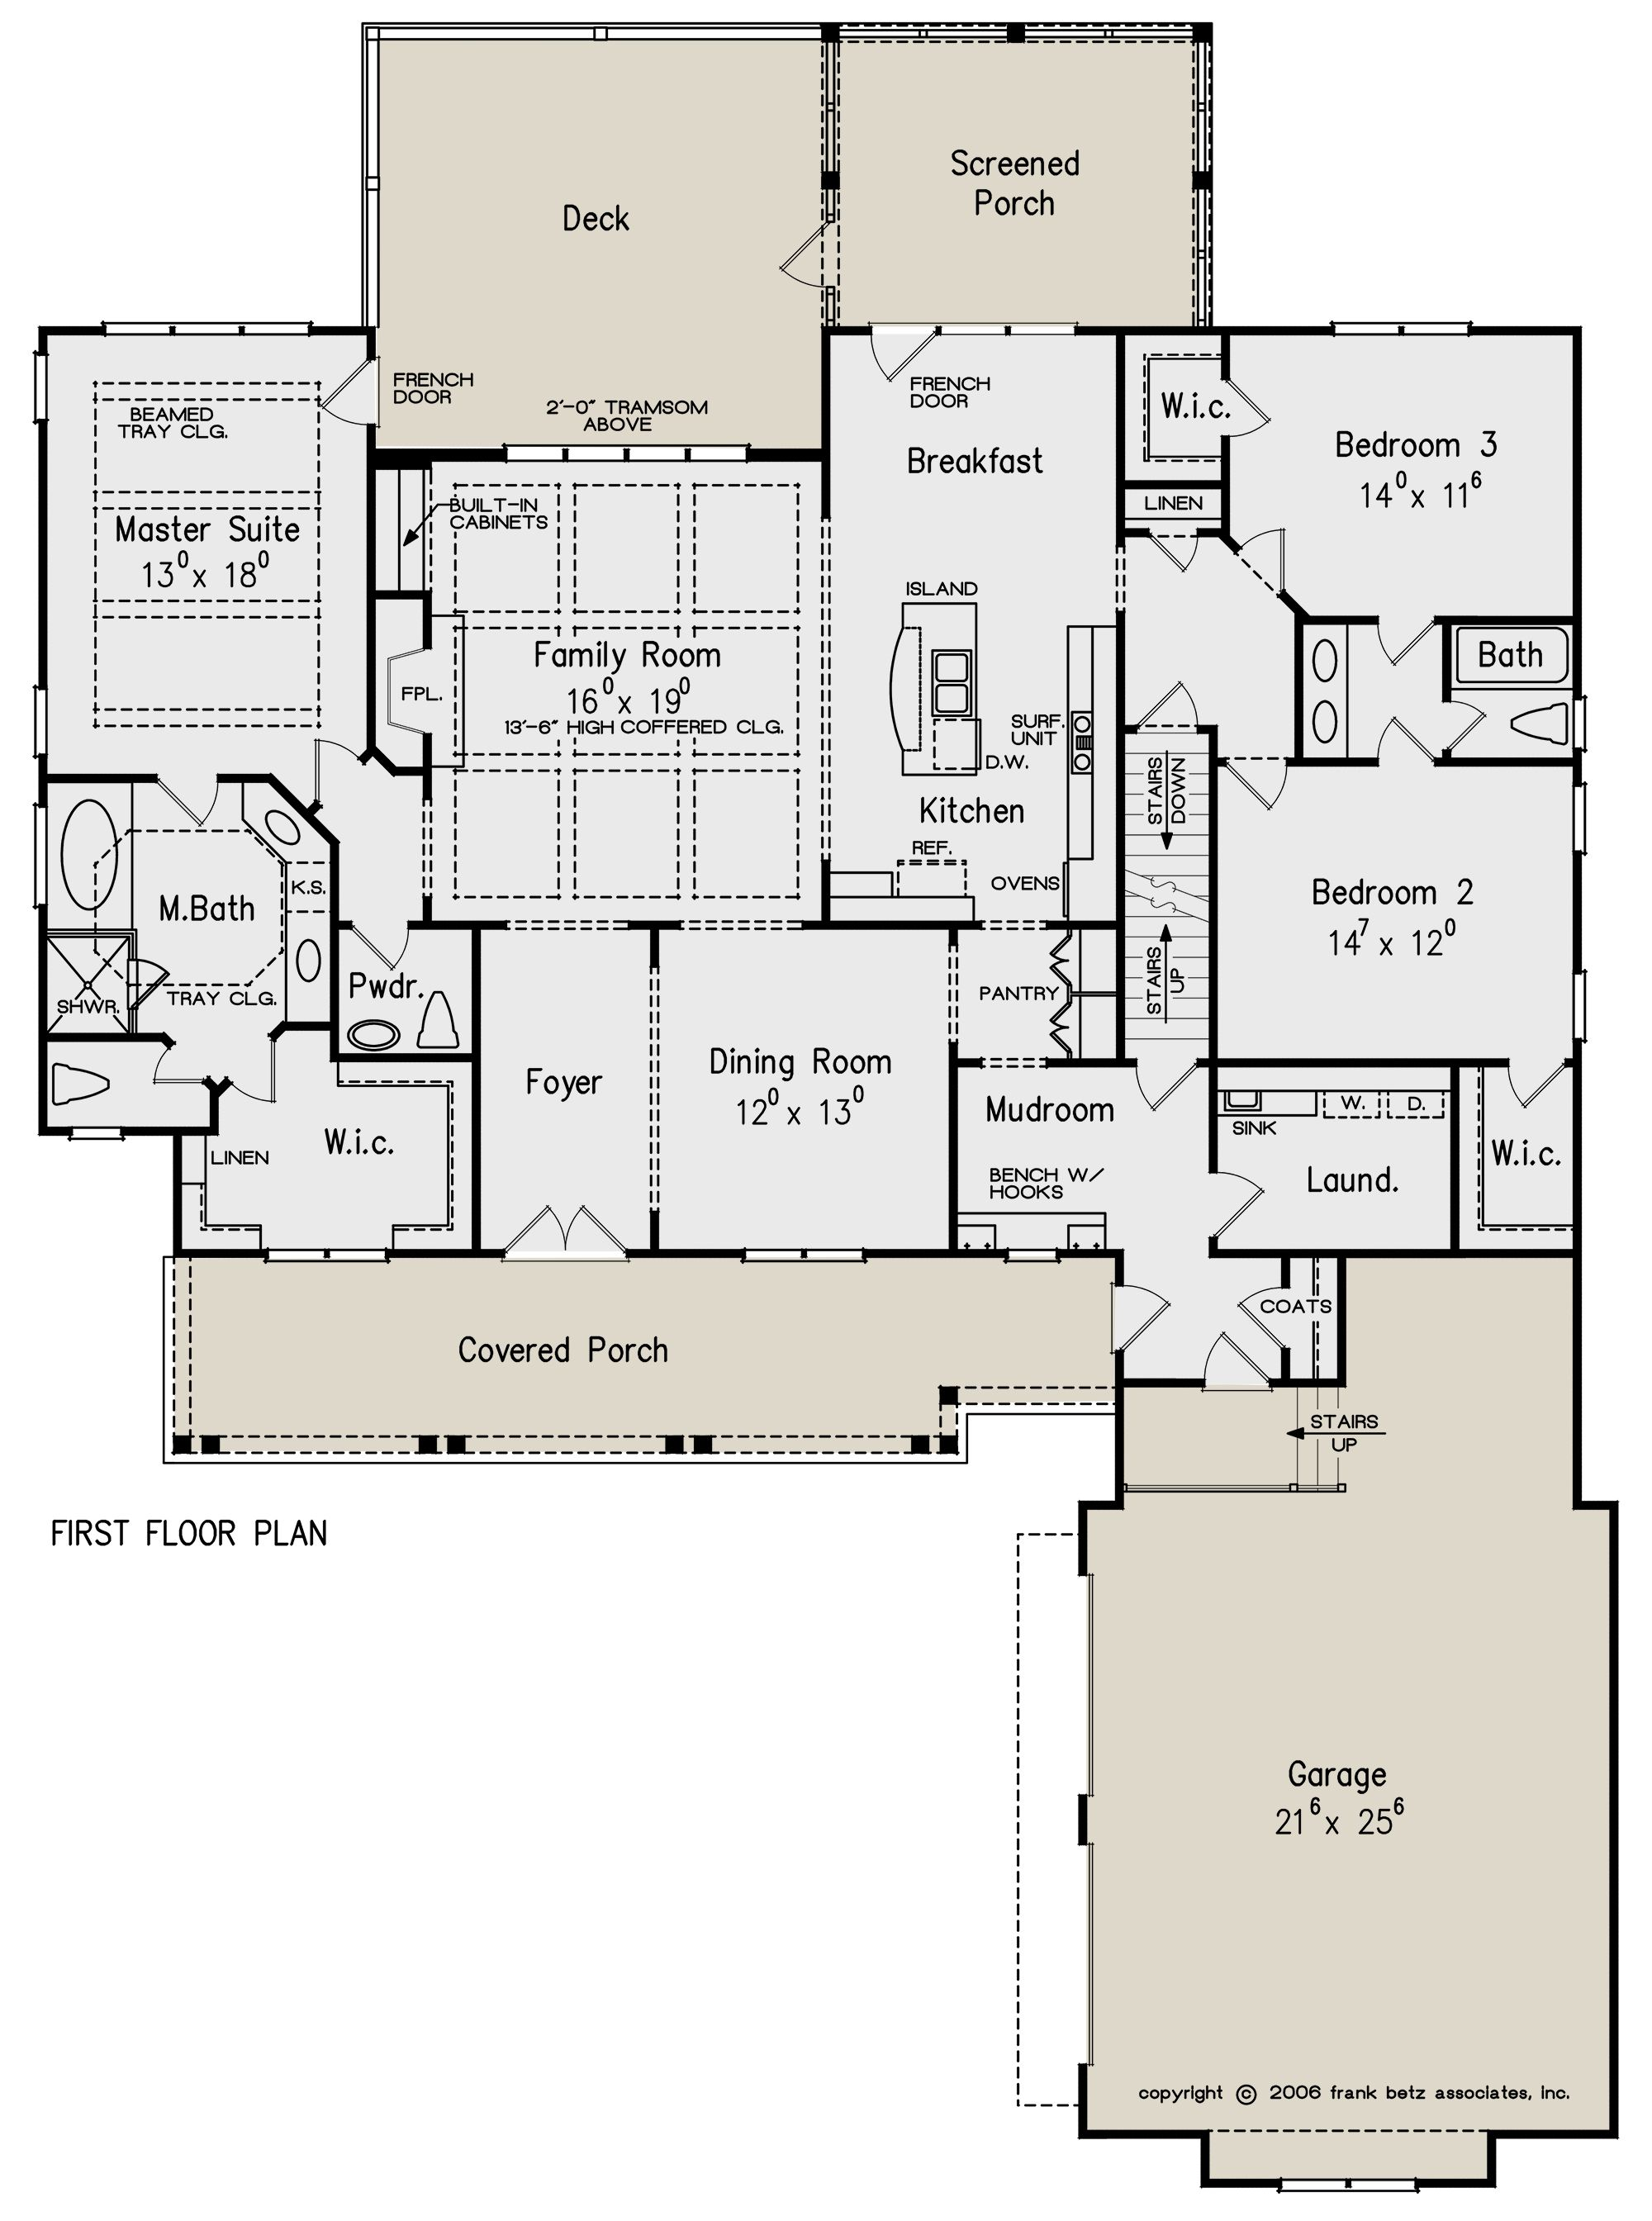 House Plan 8594 00262 Country Plan 2 325 Square Feet 3 4 Bedrooms 2 5 Bathrooms Craftsman Style House Plans House Plans One Story House Floor Plans